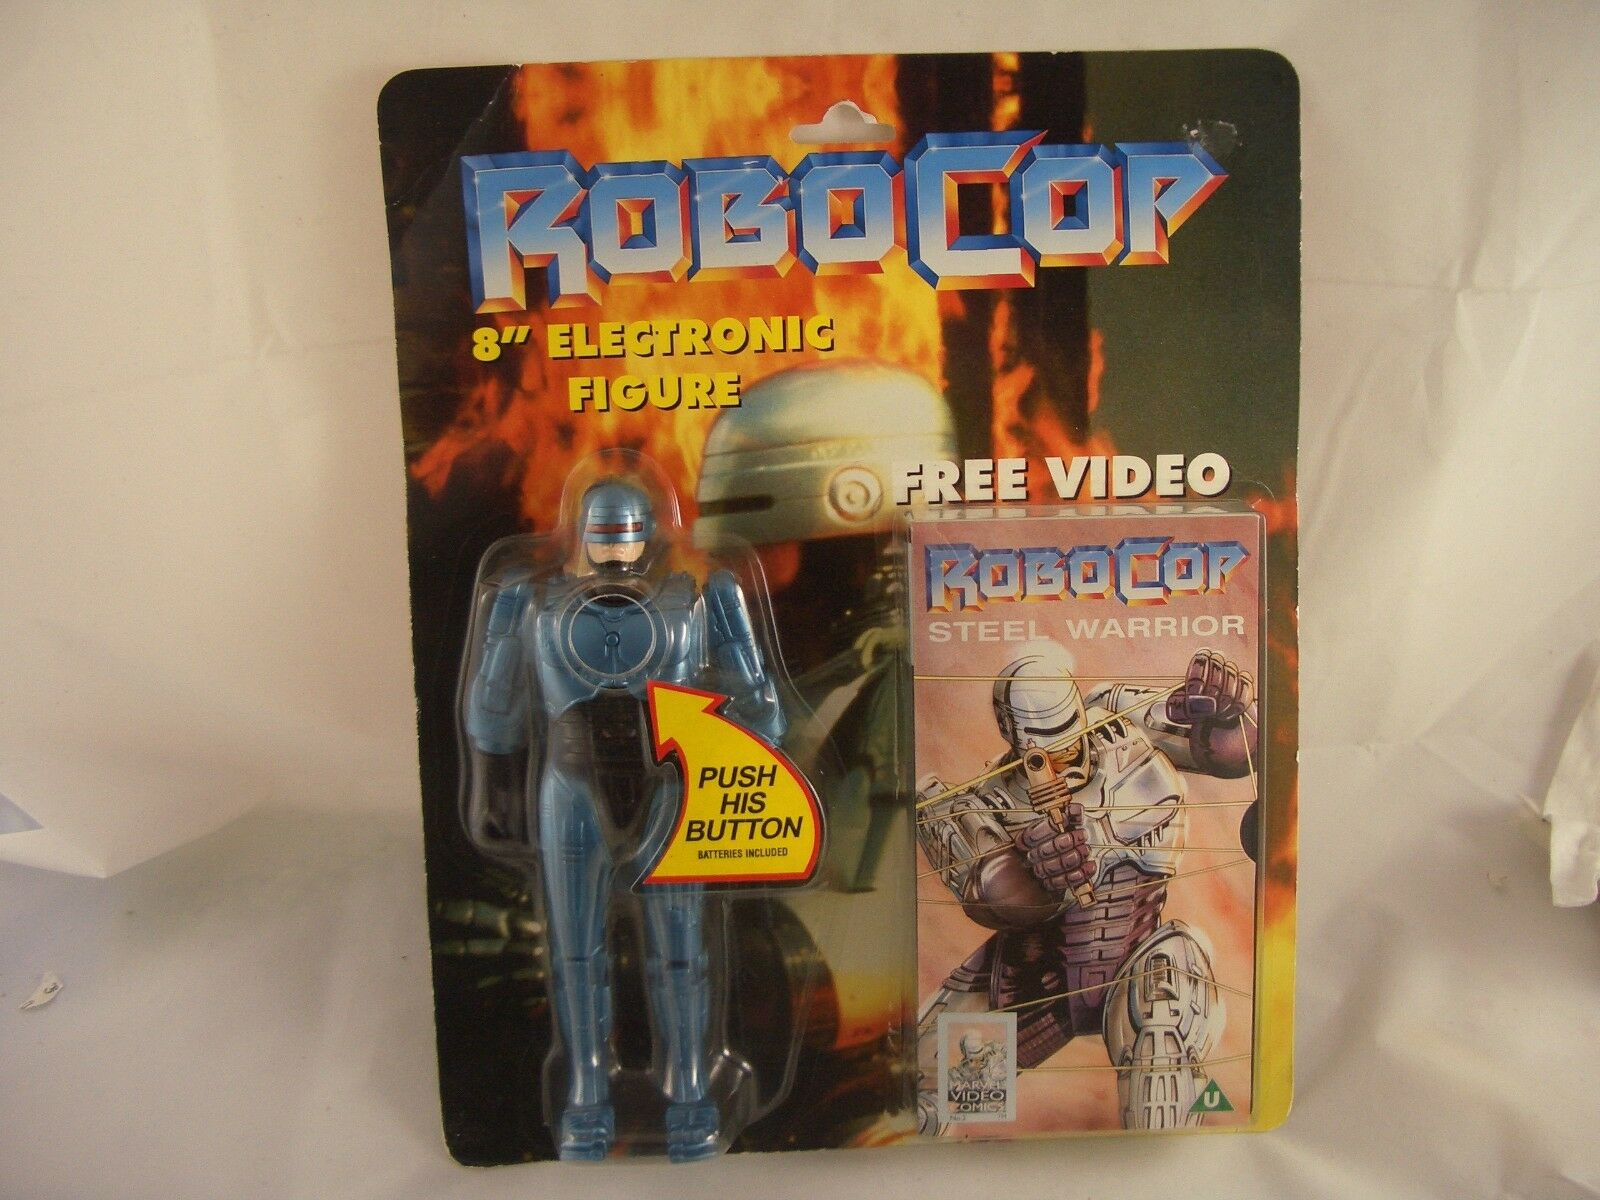 Robocop Electronic Toy Island Action Figure and Video